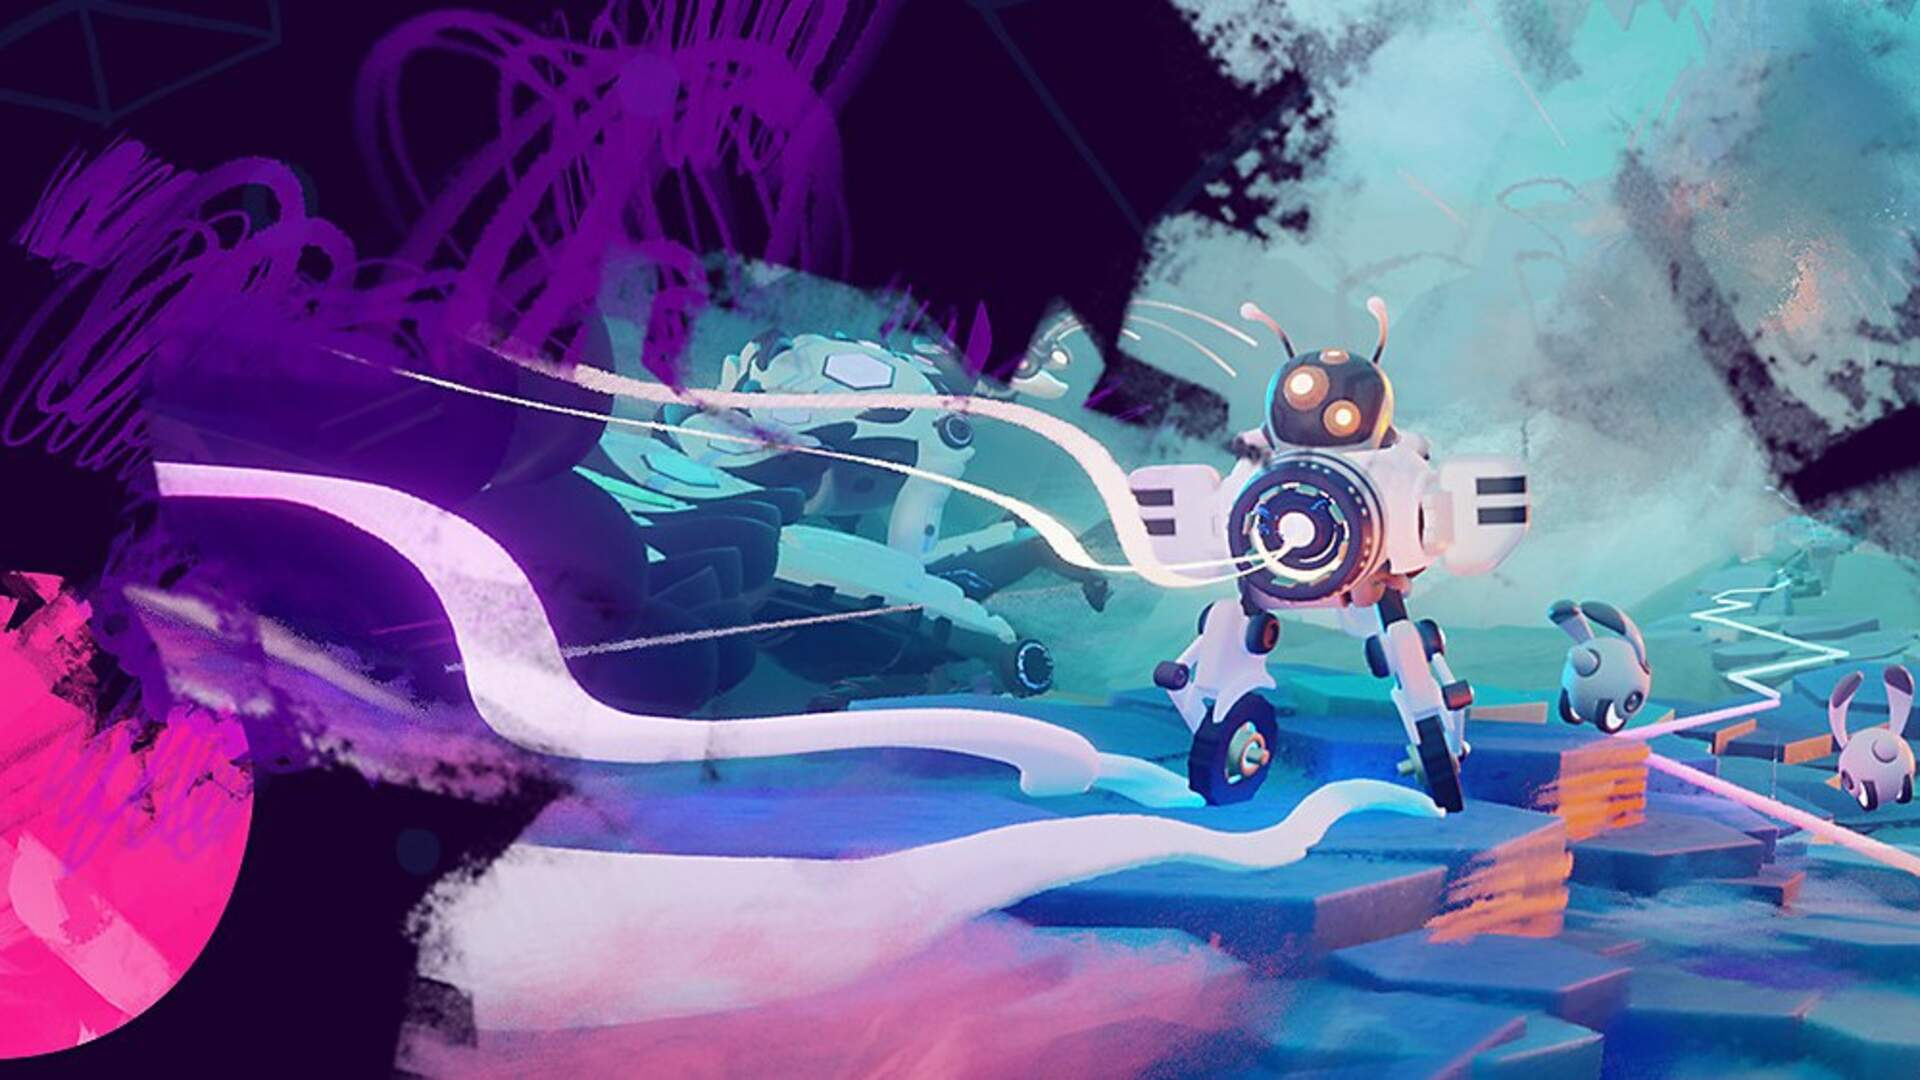 Dreams' Top Creators Share Their Expert Tips in Creating Levels, Games, and Worlds